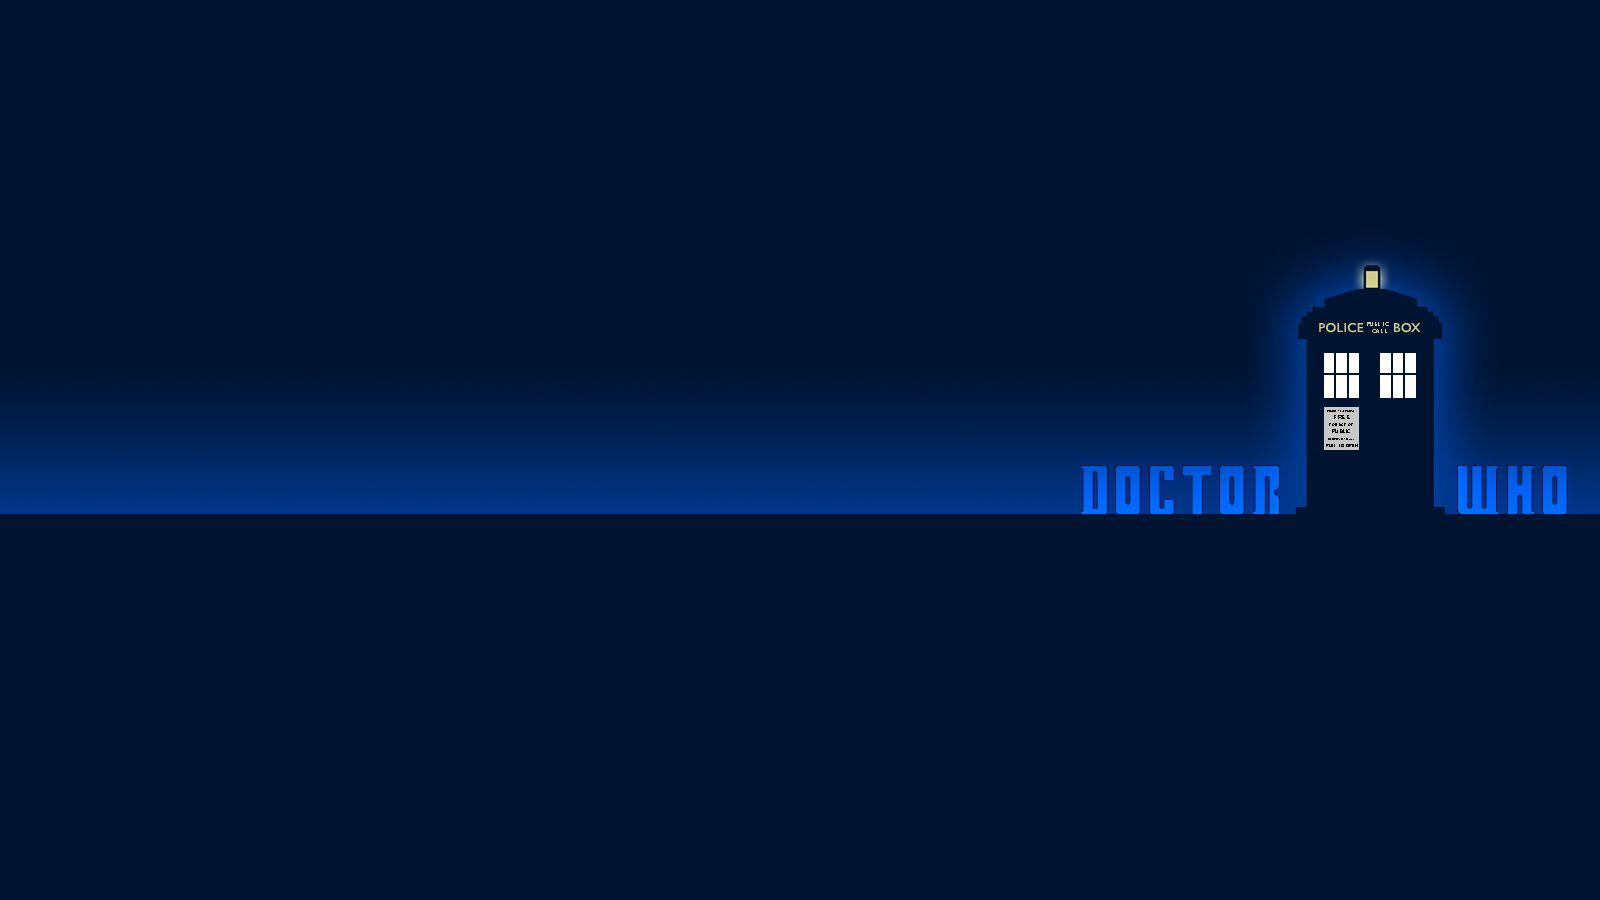 tardis images hd wallpaper - photo #12